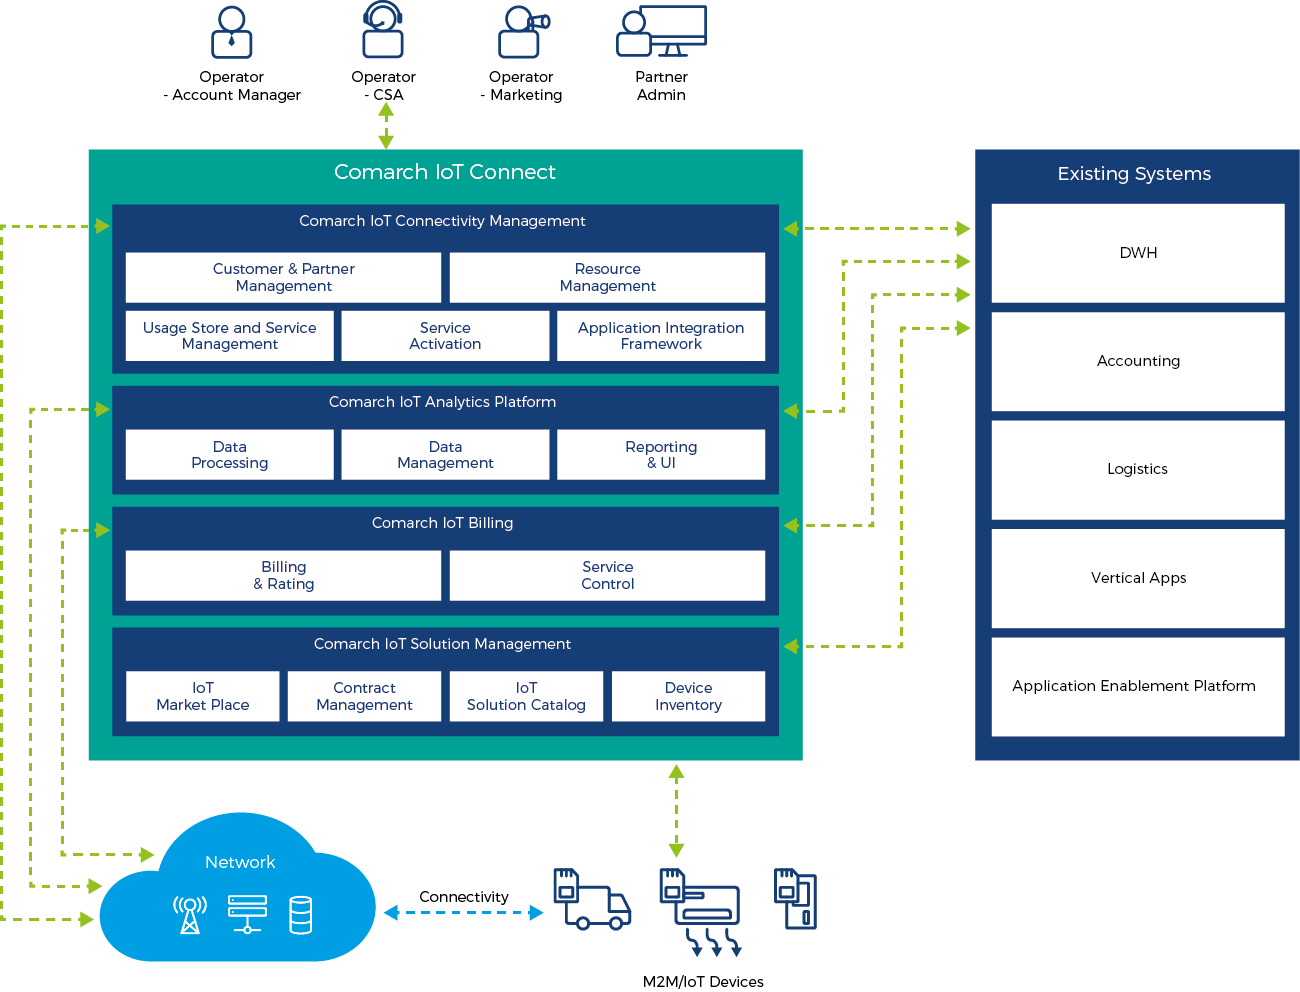 comarch iot connect graph